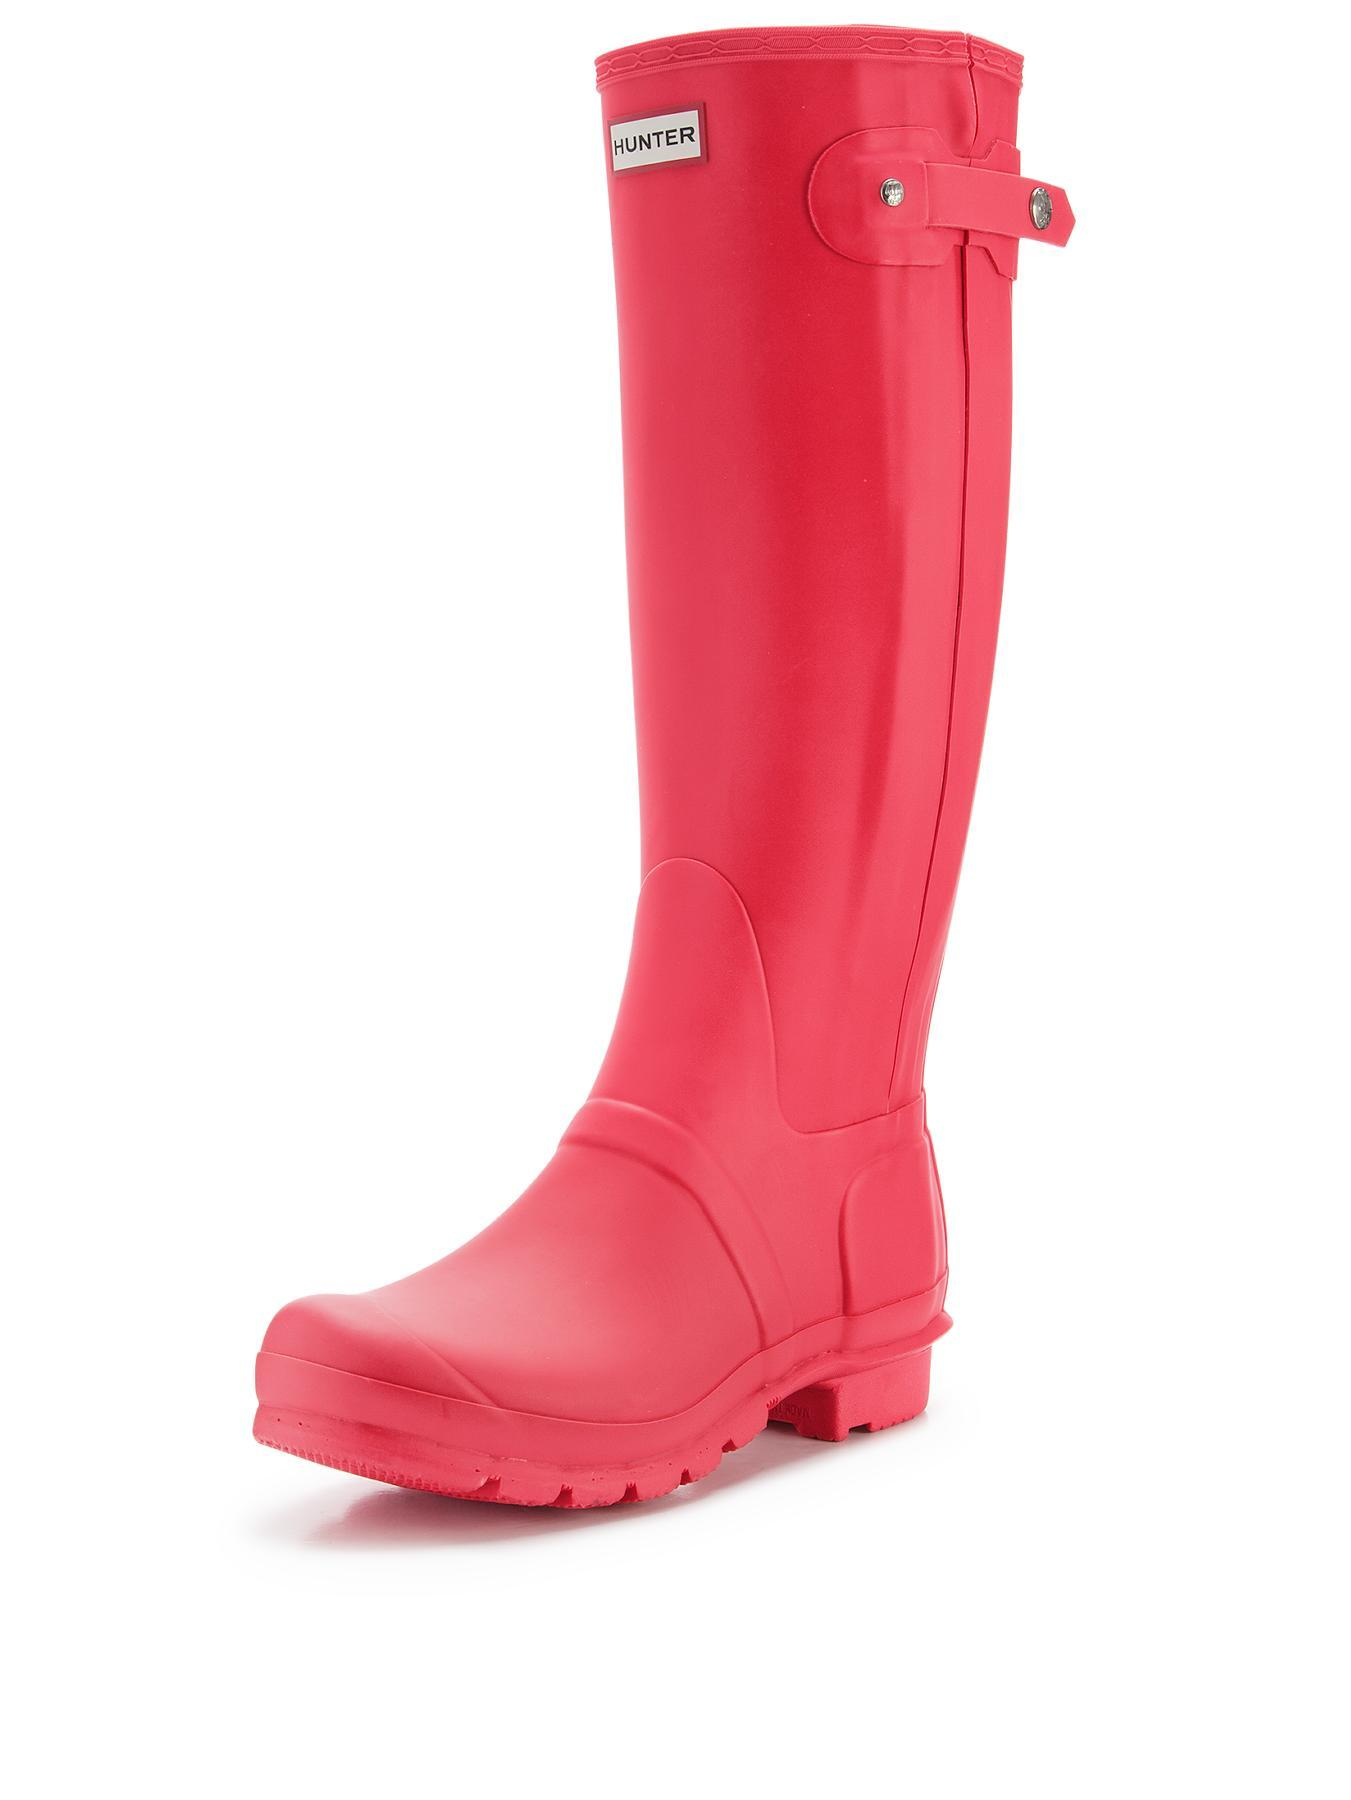 Hunter Original Slim Zip Wellys - Bright Coral - Coral, Coral